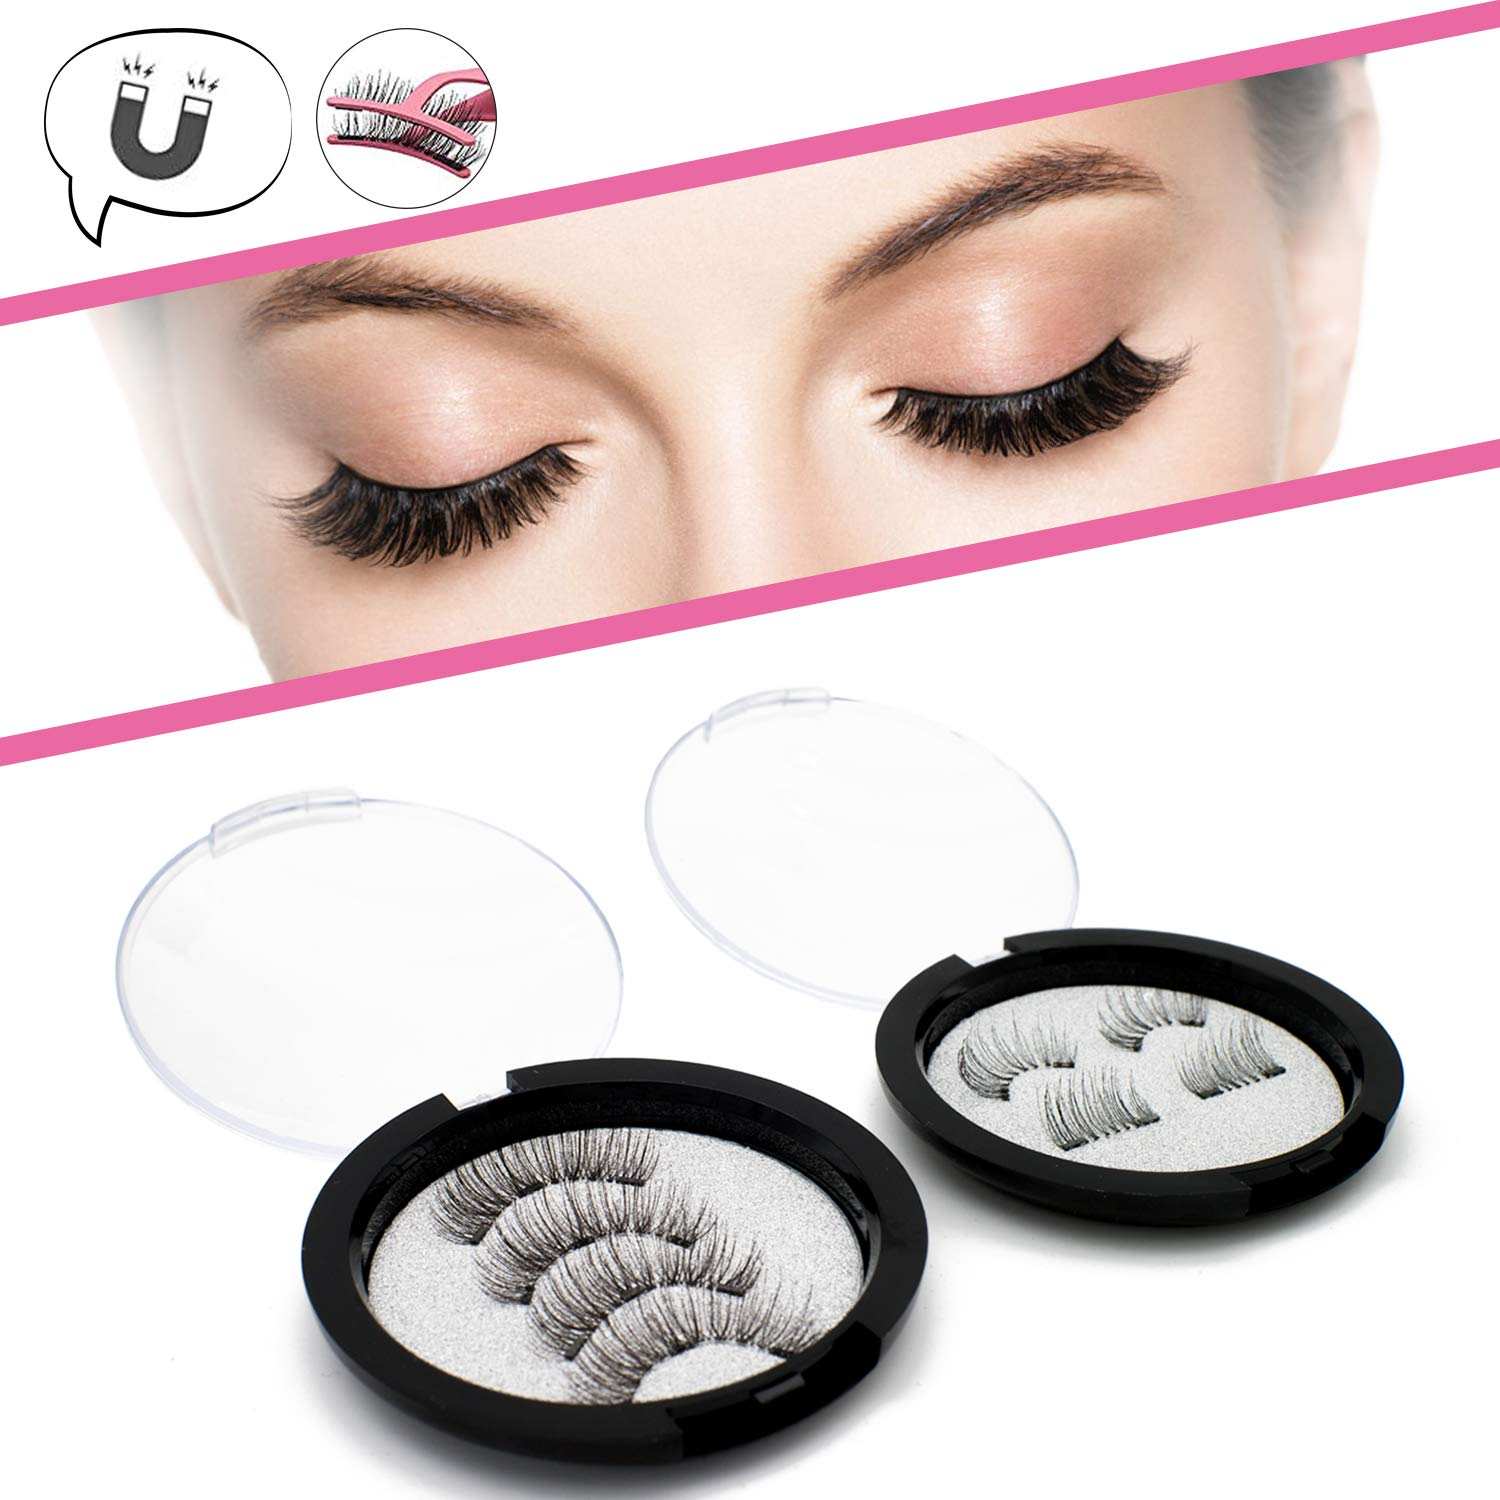 68dacde3af5 Amazon.com : Magnetic Eyelashes 3 Magnets Natural Look Full Eye Triple  Magnetic Lashes Extension 0.2mm Ultra Thin Magnet Lashes No Glue Handmade  Reusable (2 ...